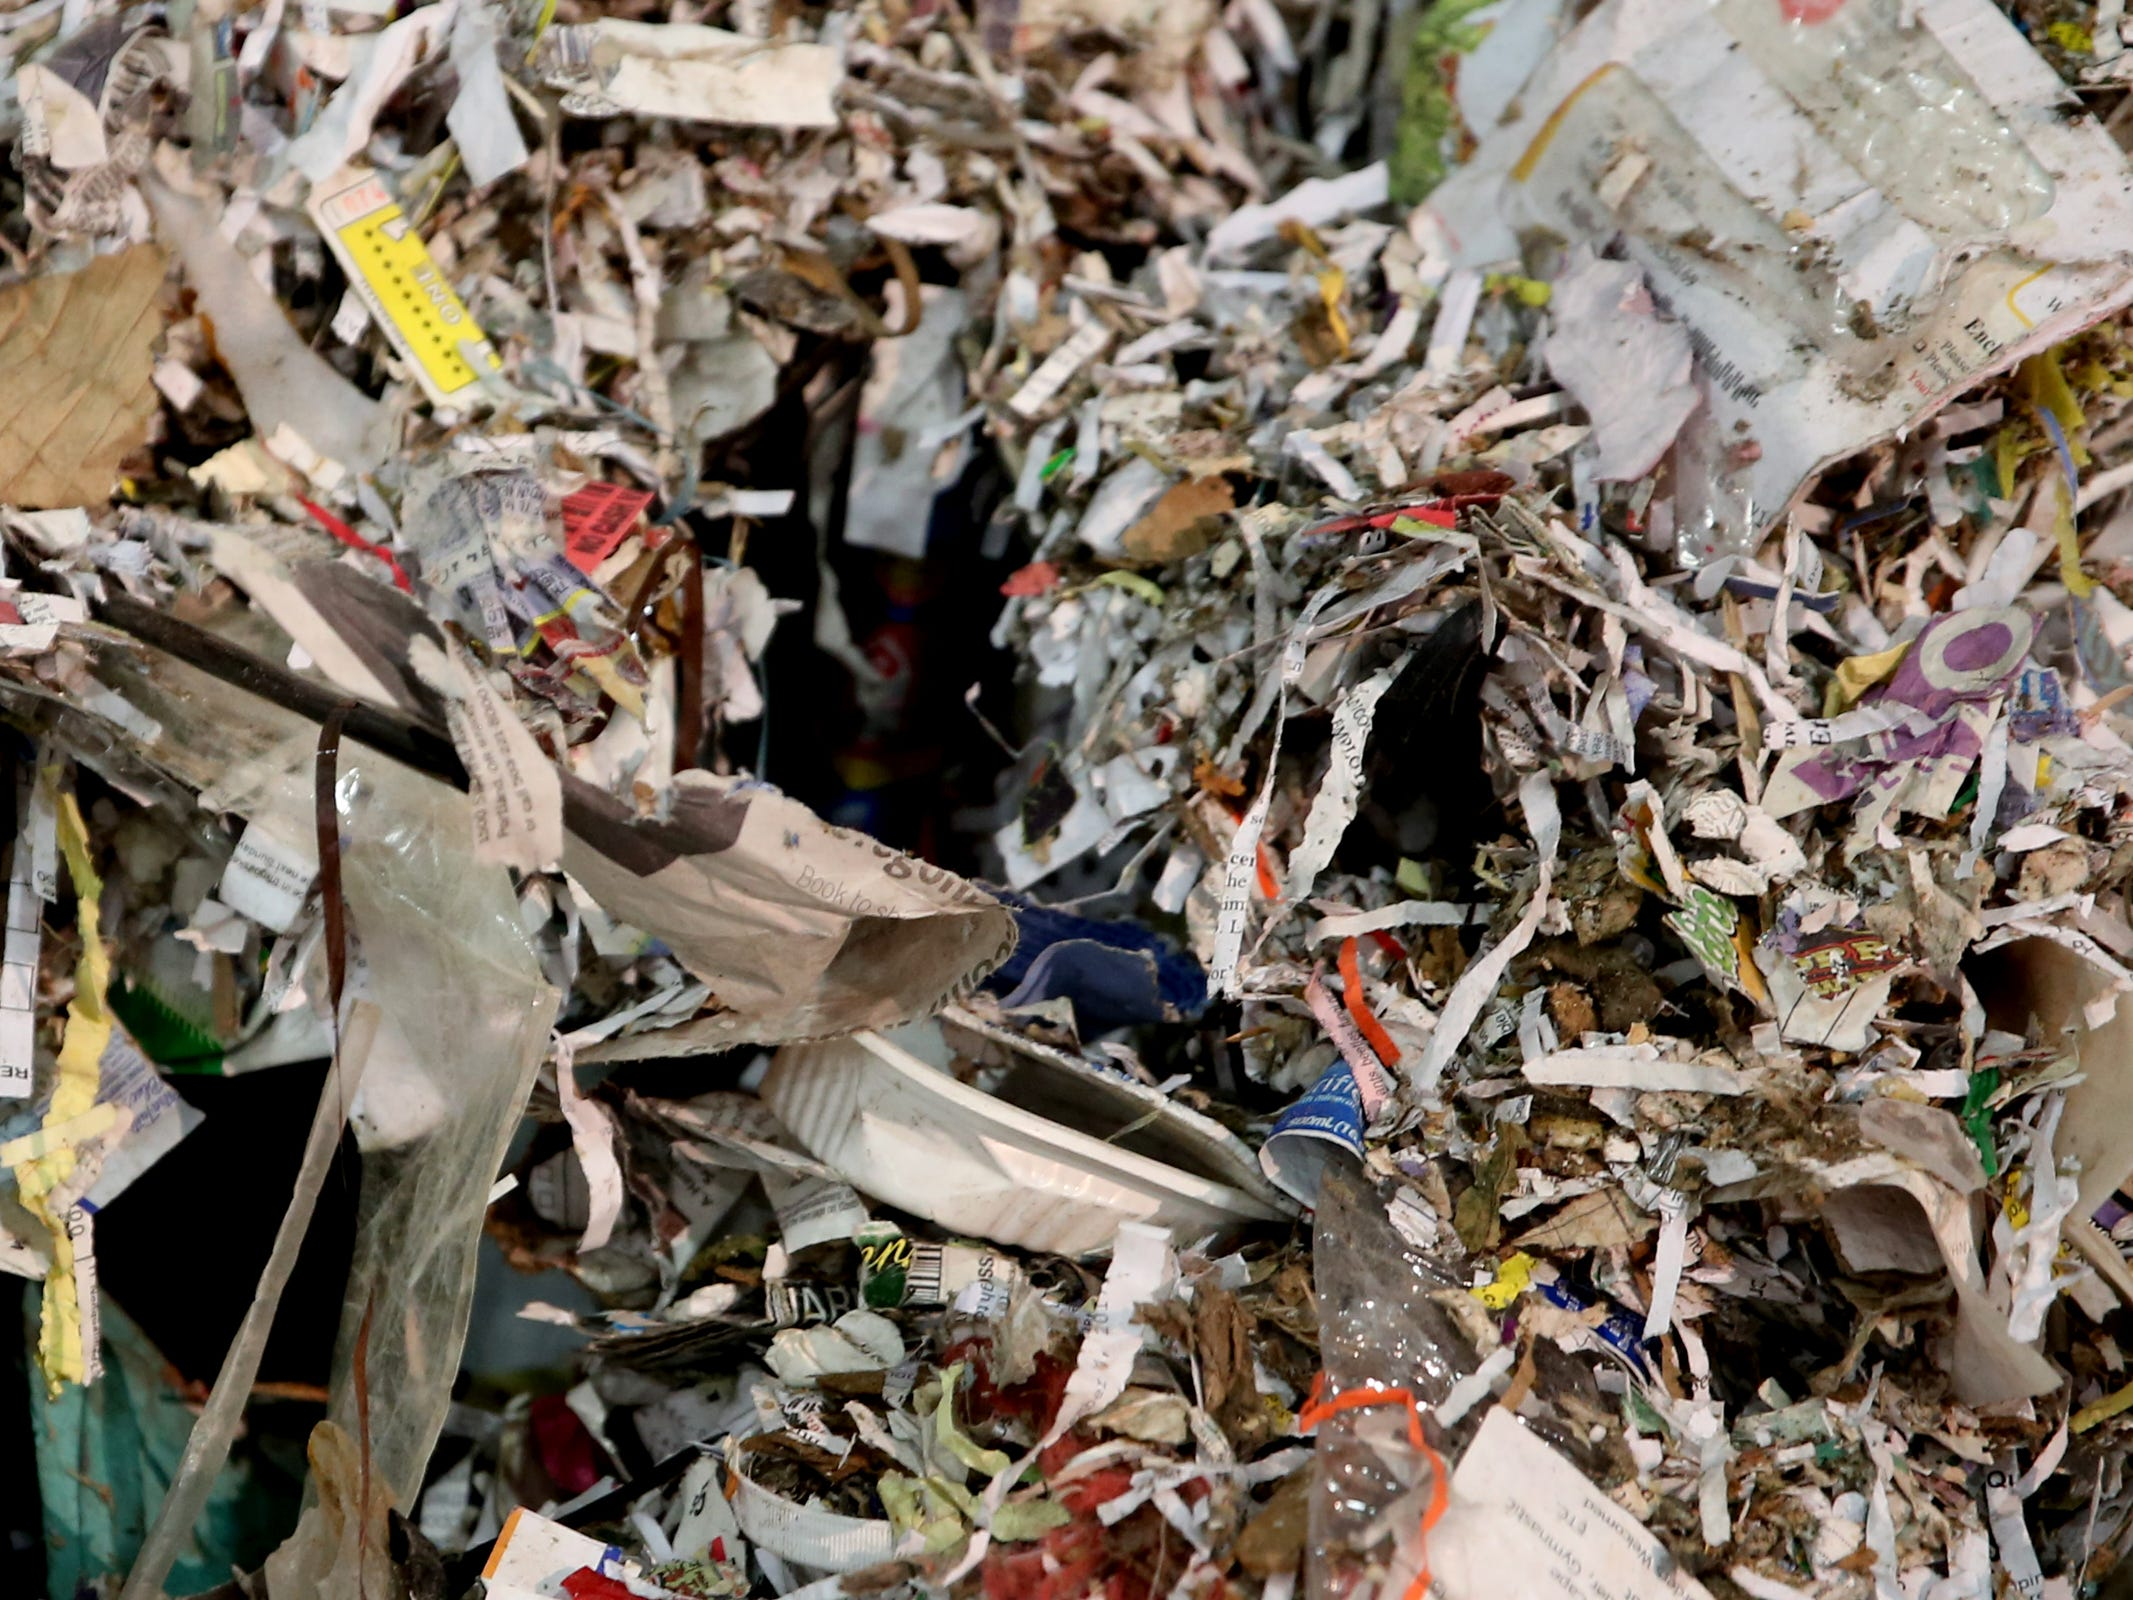 Trash that cannot be recycled or sold, like shredded paper, piles up at Garten Recycling in Salem on Friday, Aug. 3, 2018.